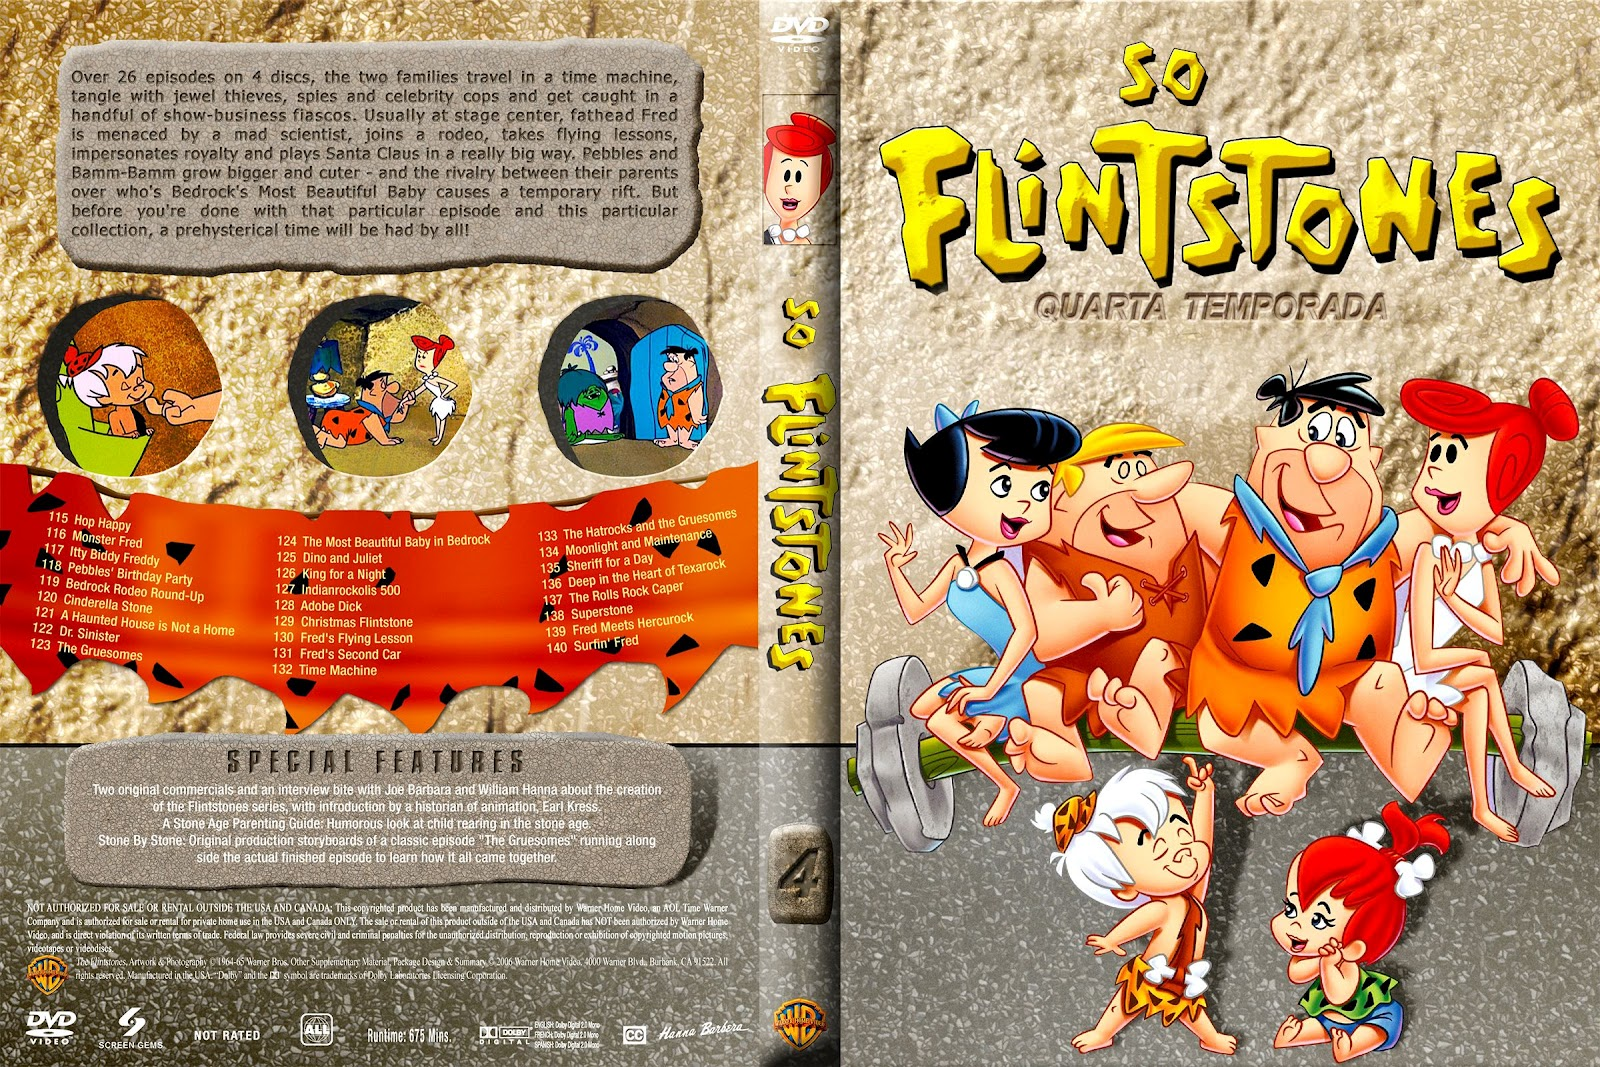 Filme Os Flintstones within os flintstones (personagens) - duronaqueda